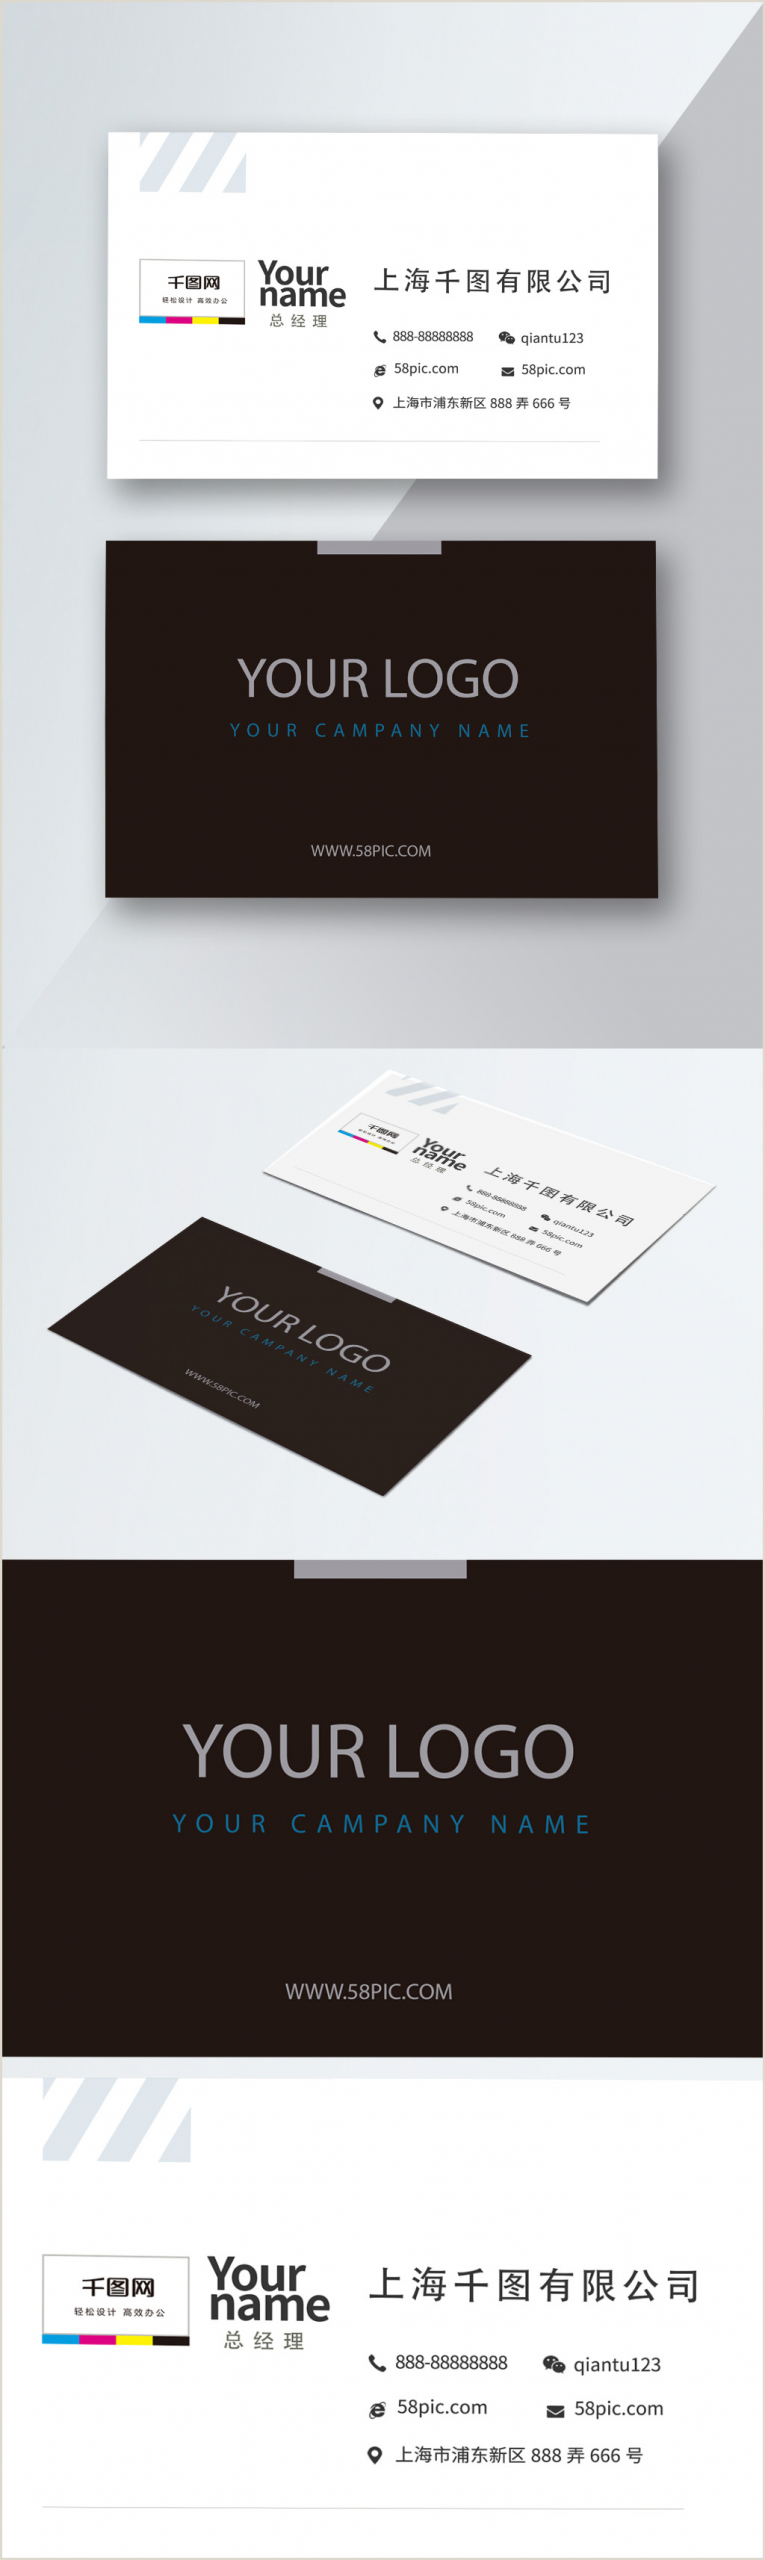 Business Card Styles Black And White Business Senior Business Card With Qr Code